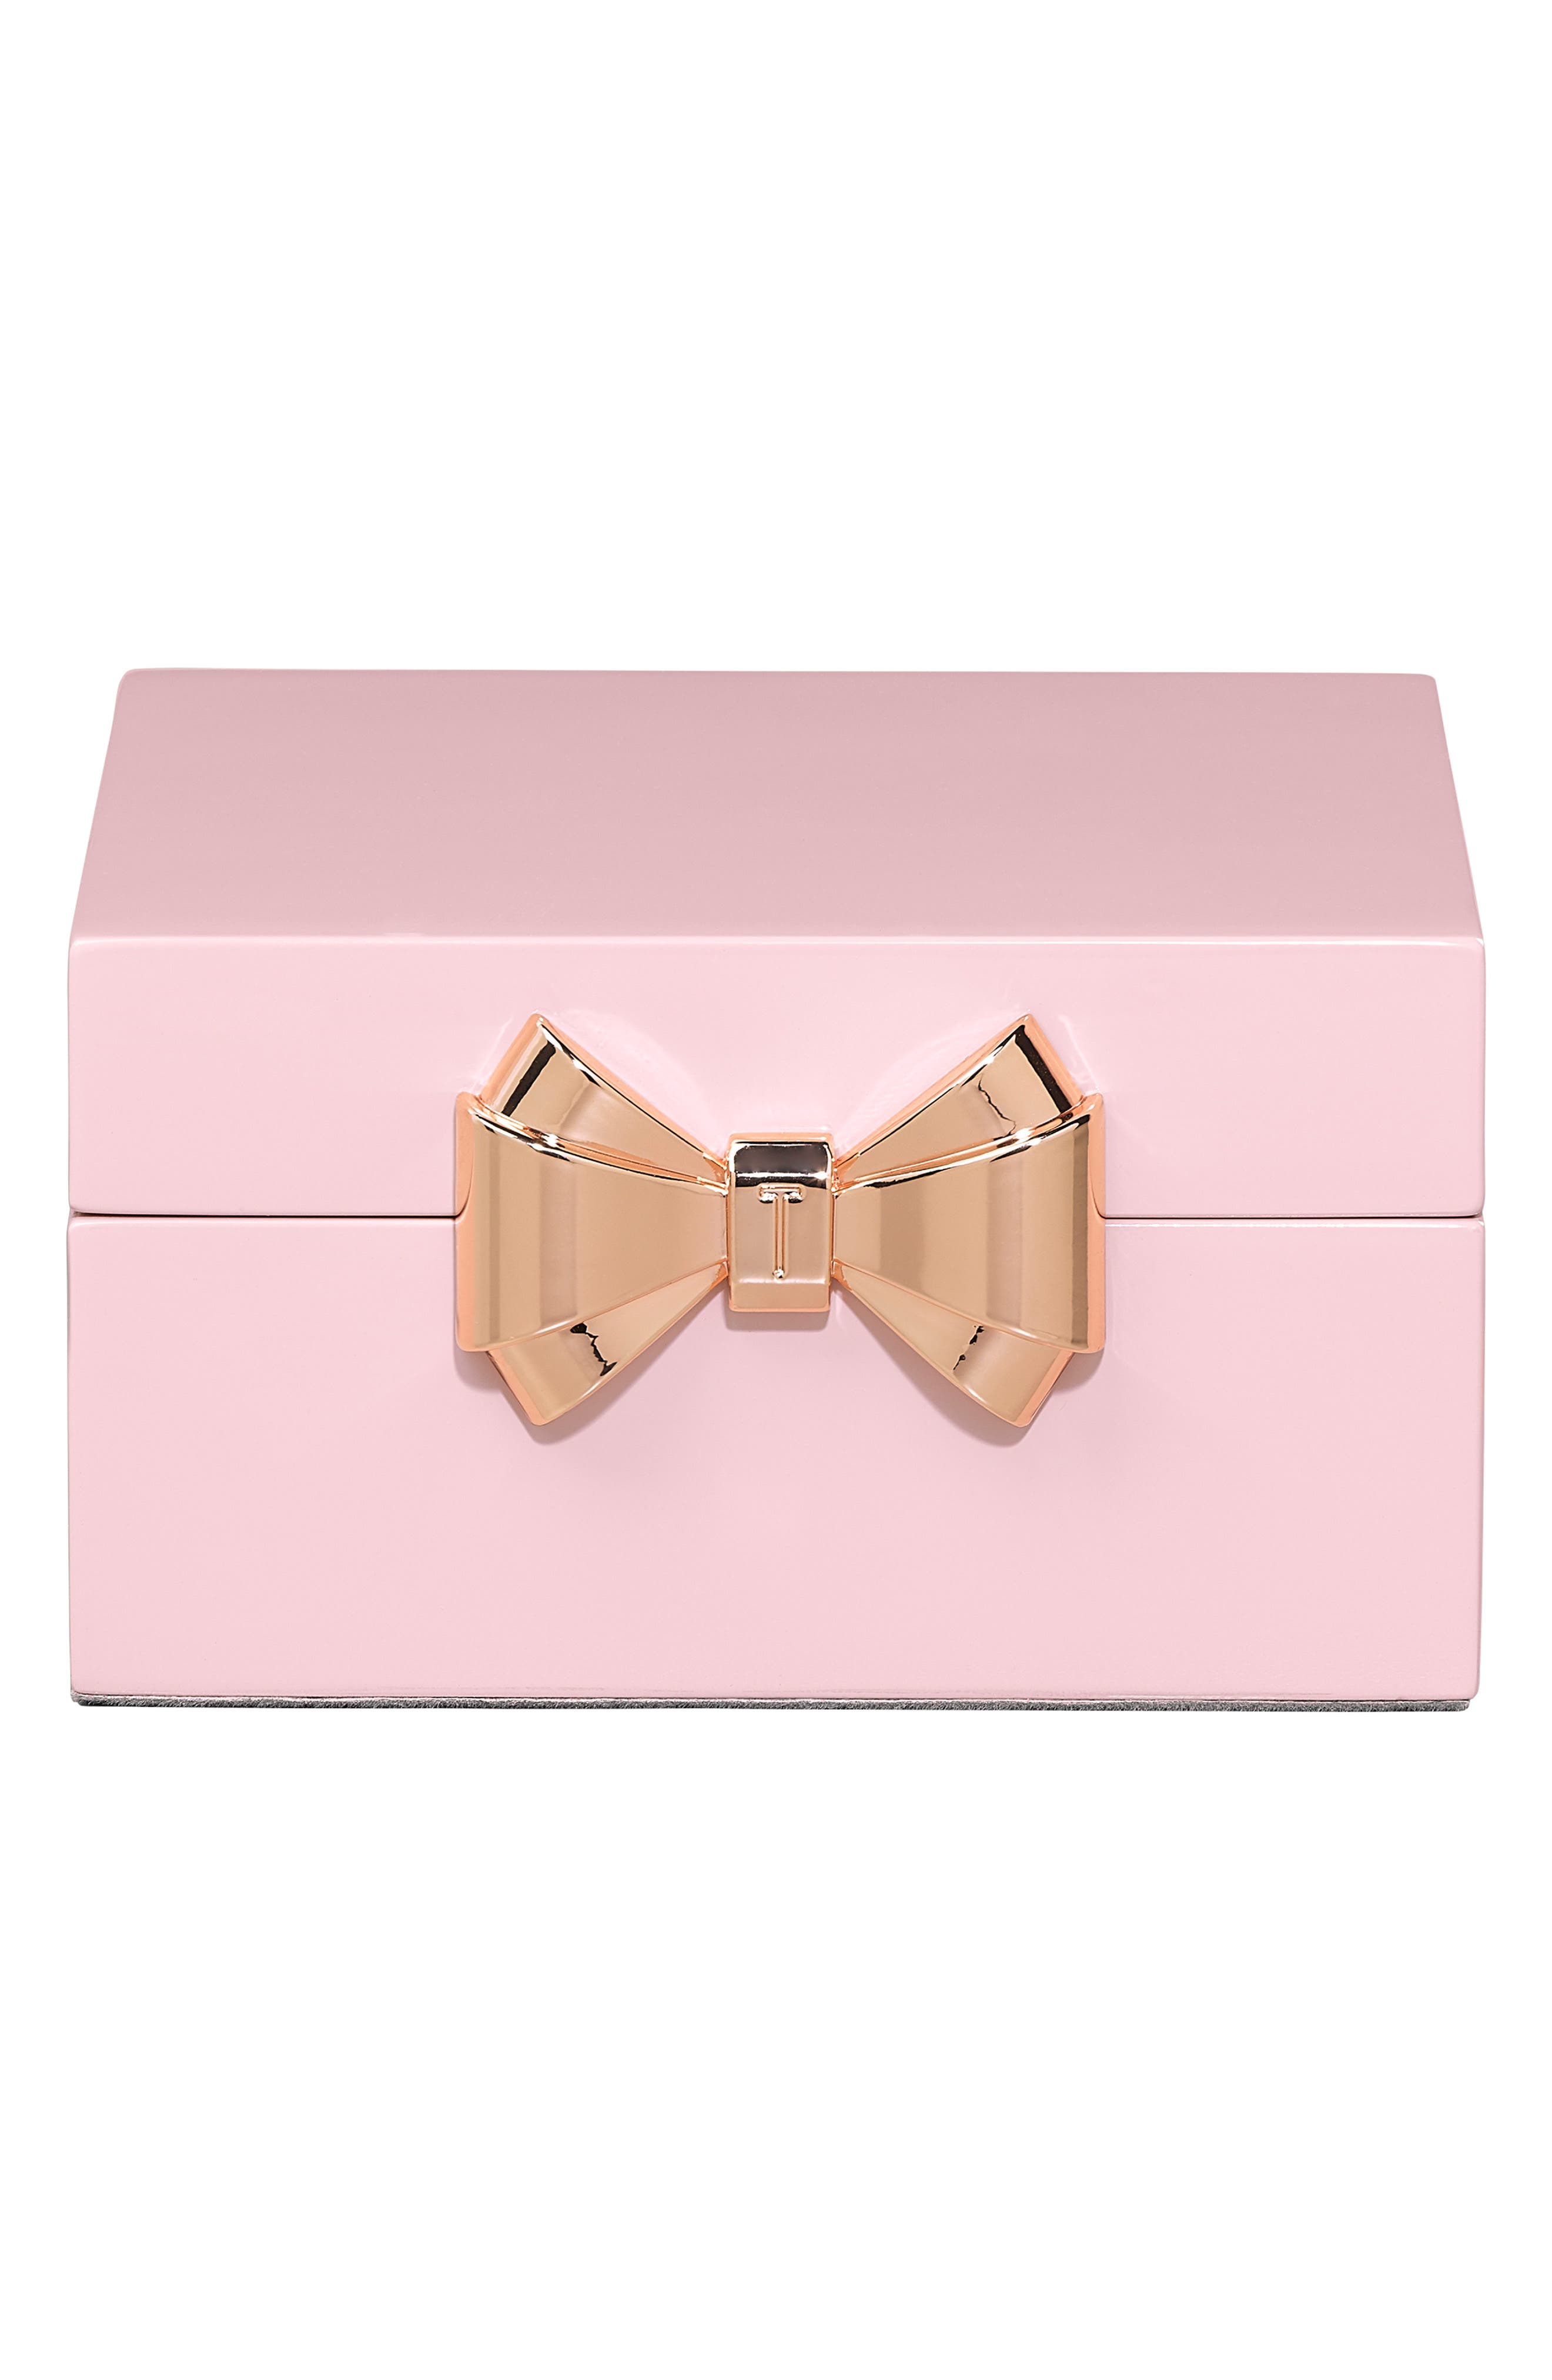 Square Jewelry Box,                             Main thumbnail 1, color,                             Pink